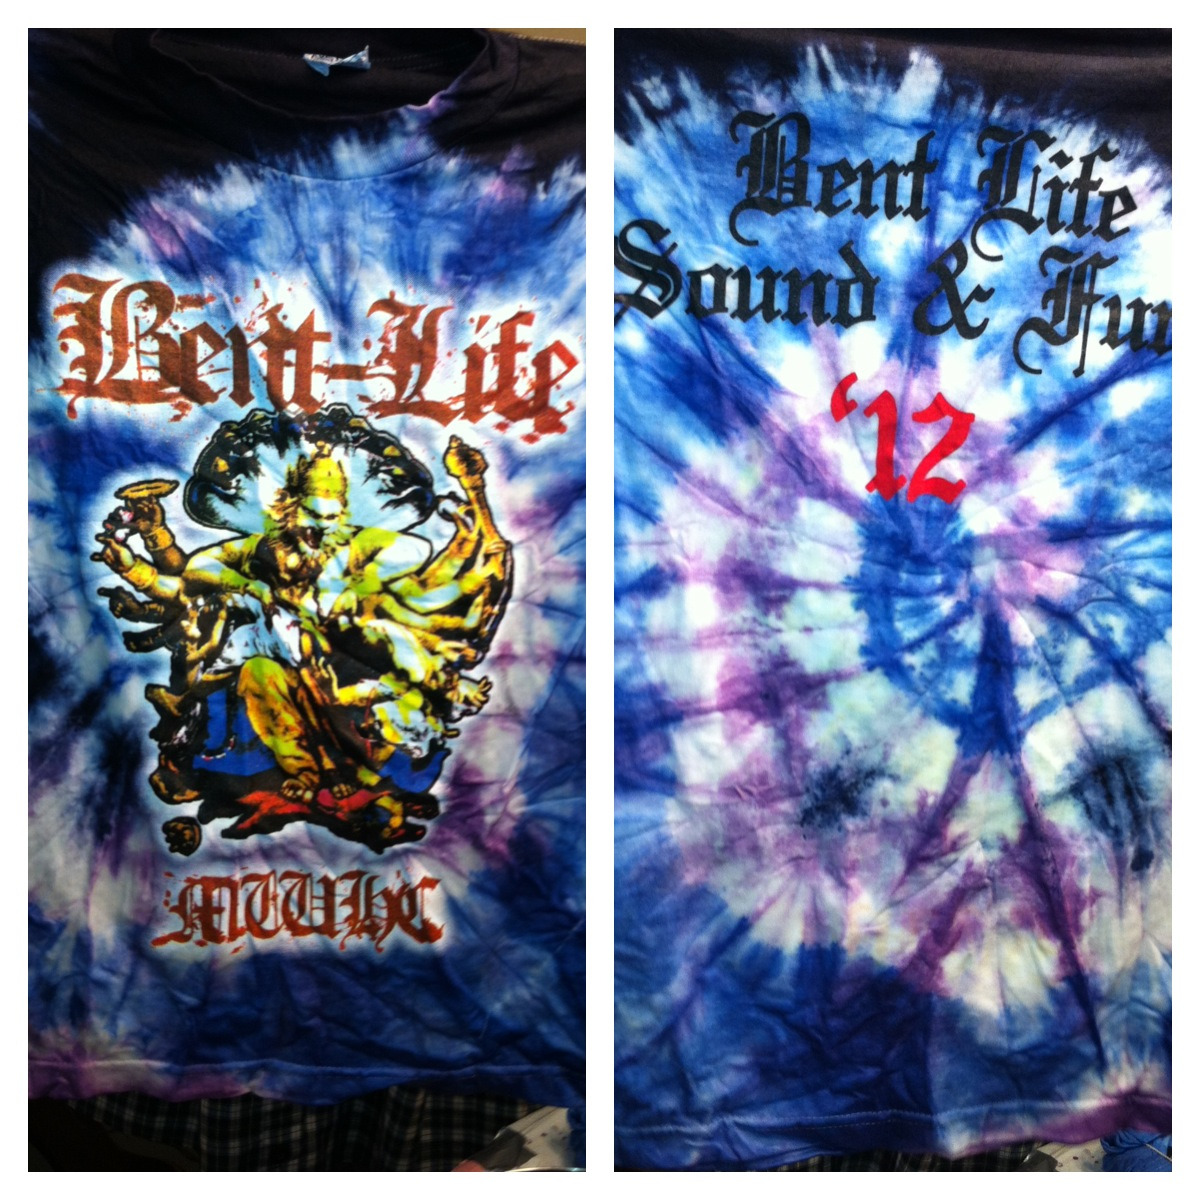 Bent Life Sound and Fury 2012 shirts.